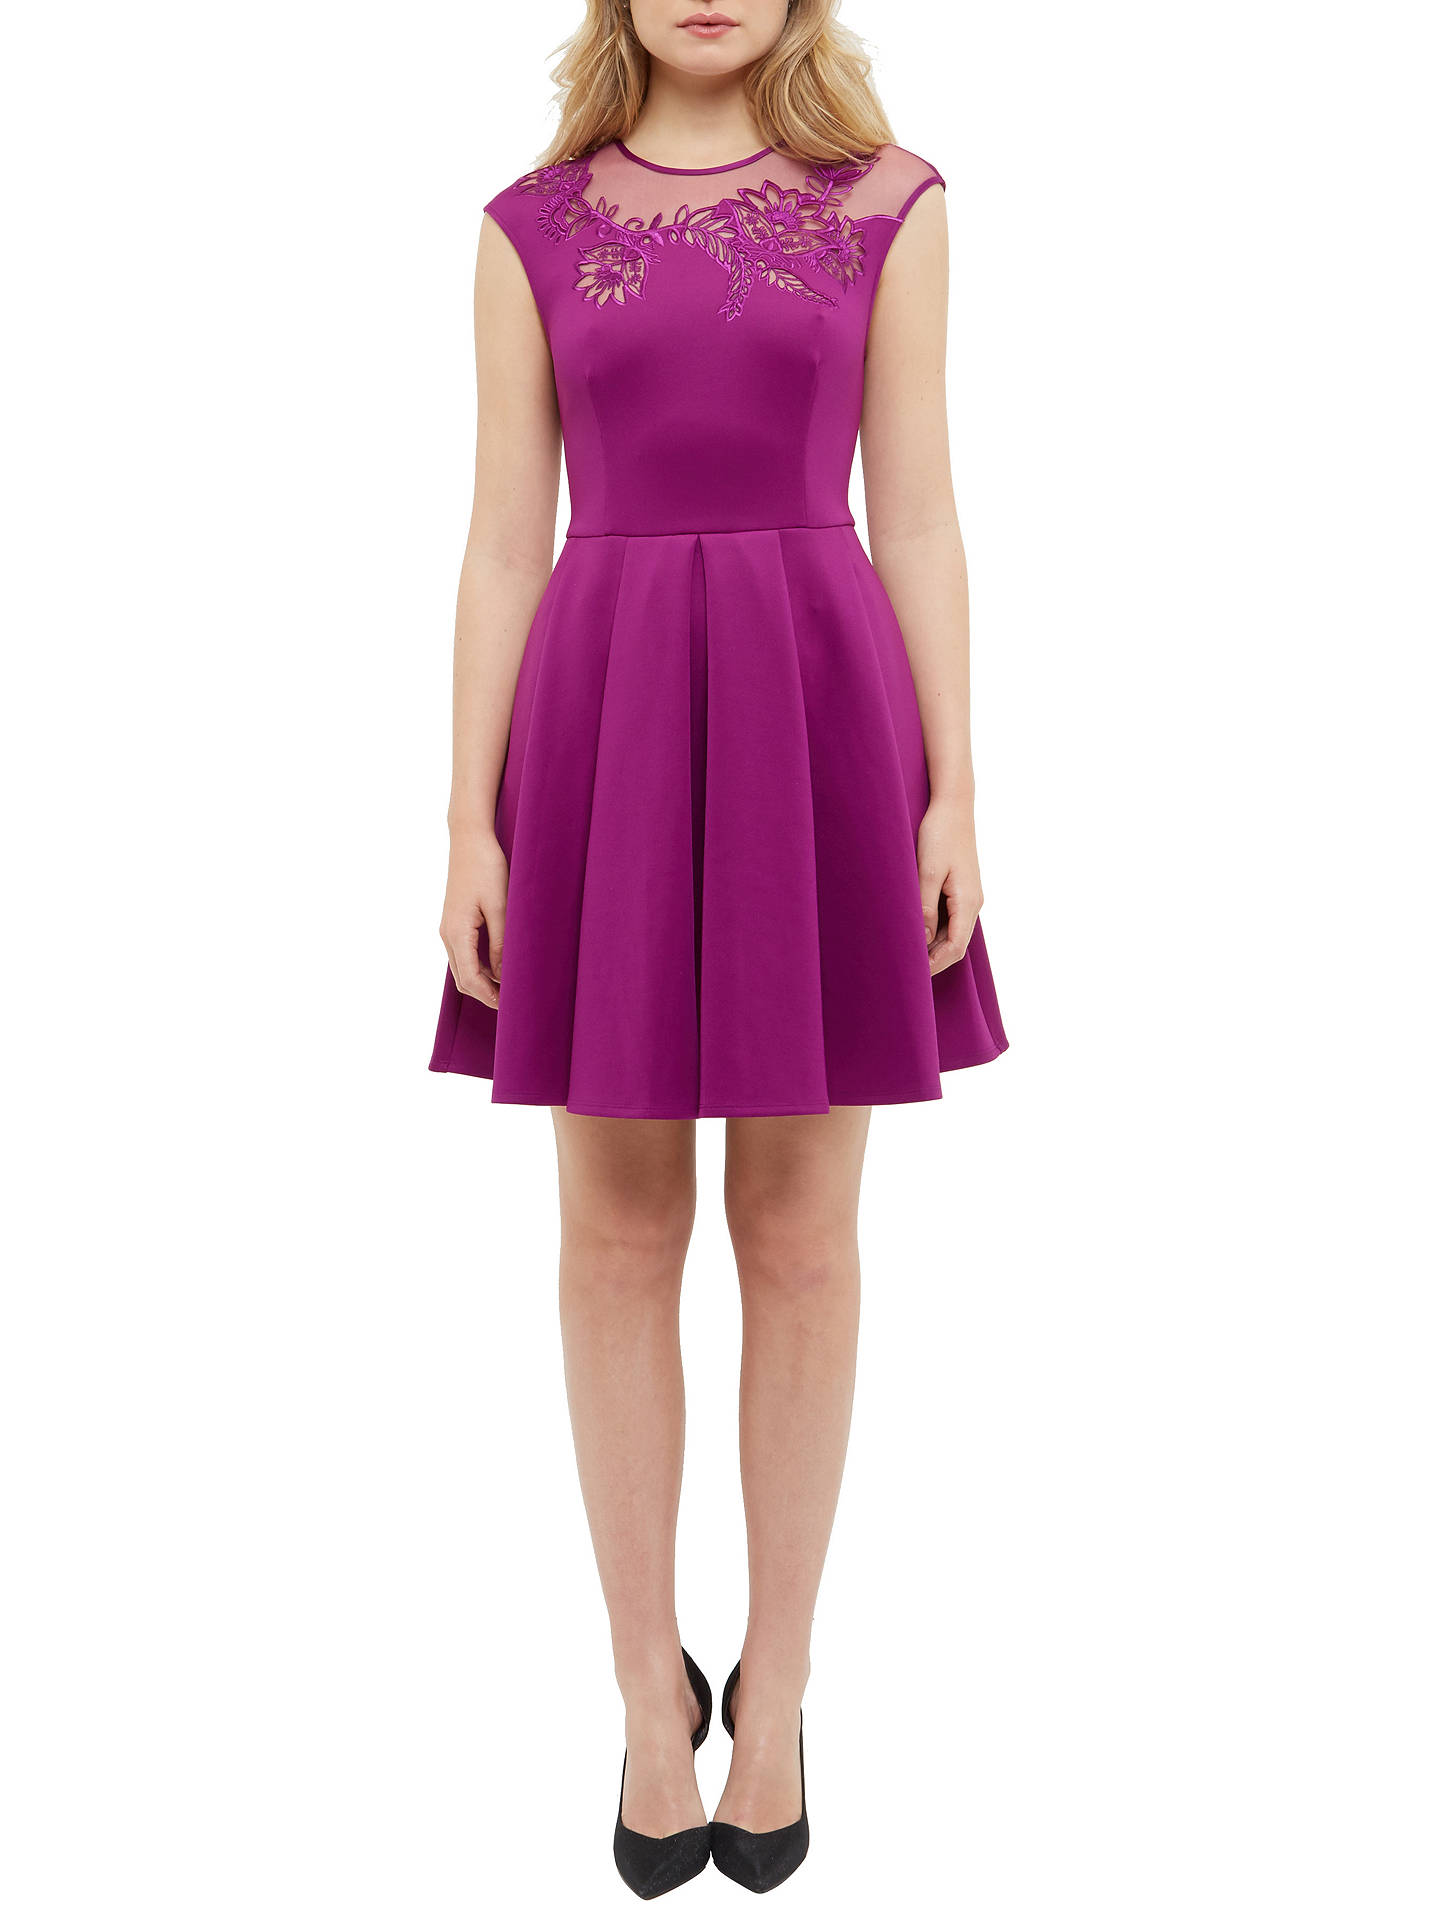 8cabf55a9030f4 ... Buy Ted Baker Dollii Embroidered Mesh Detail Skater Dress